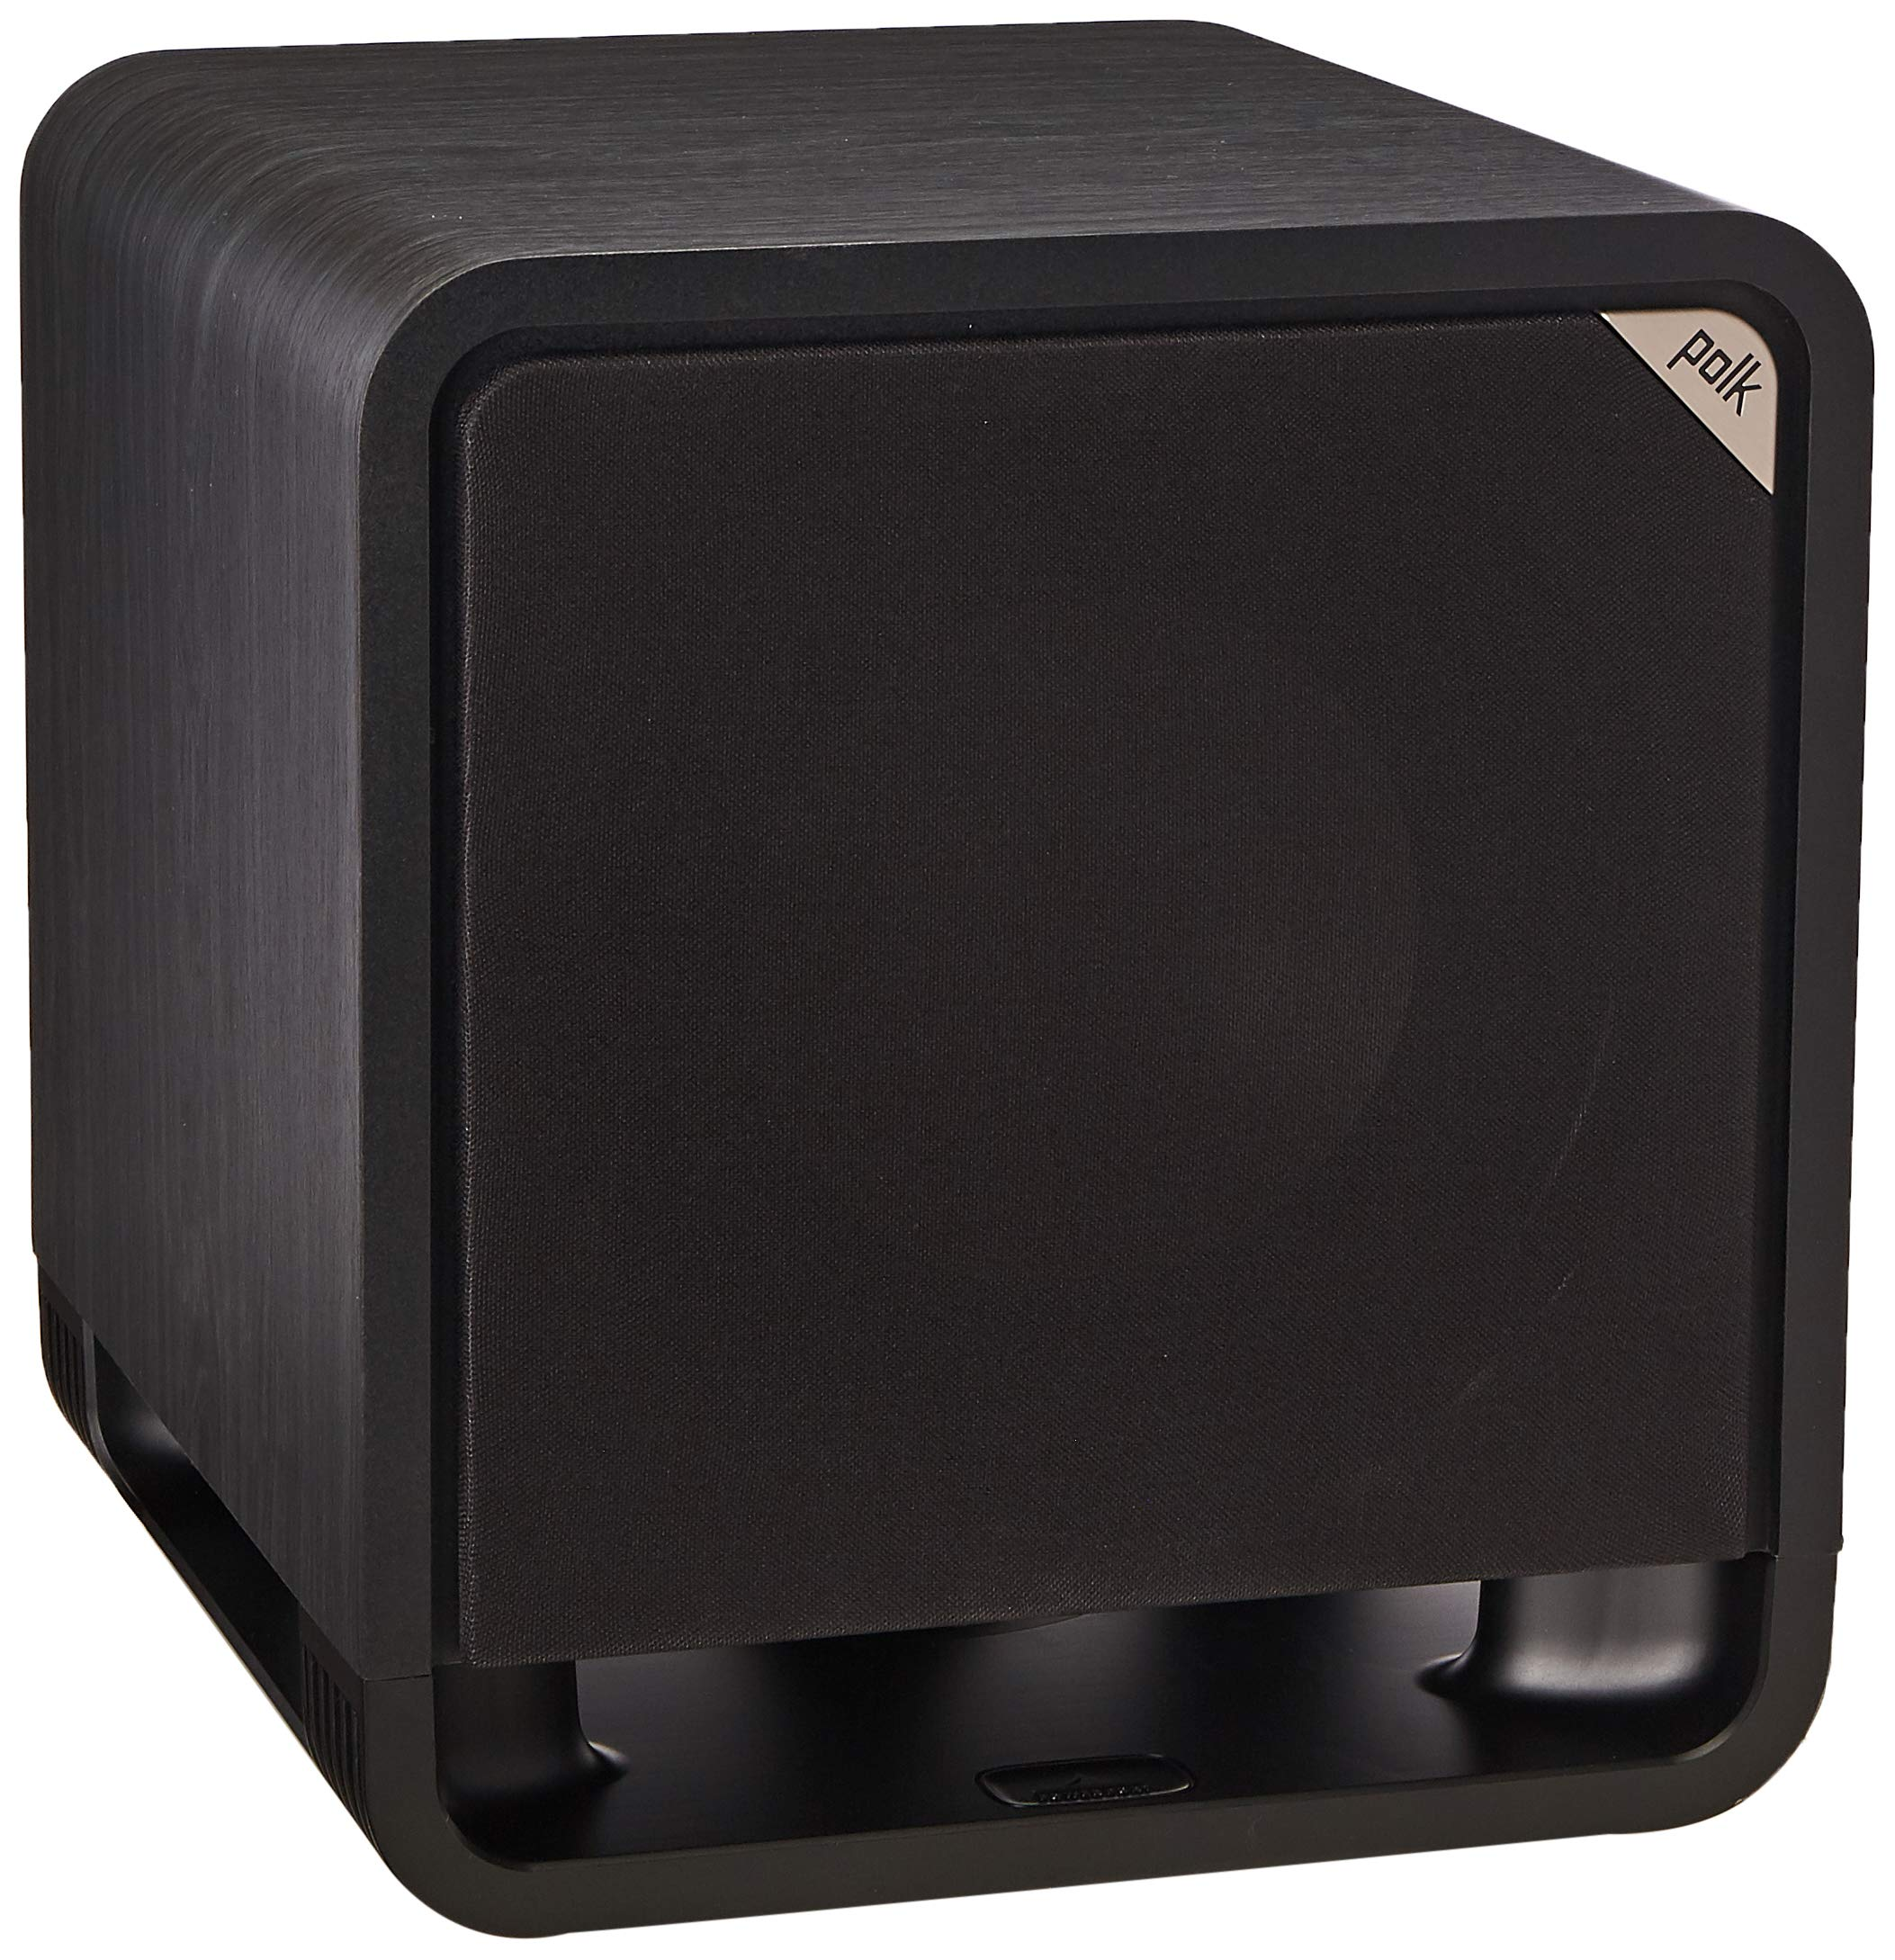 Polk Audio HTS 10 Powered Subwoofer with Power Port Technology | 10'' Woofer, up to 200W Amp | For the Ultimate Home Theater Experience | Modern Sub that Fits in any Setting | Washed Black Walnut by Polk Audio